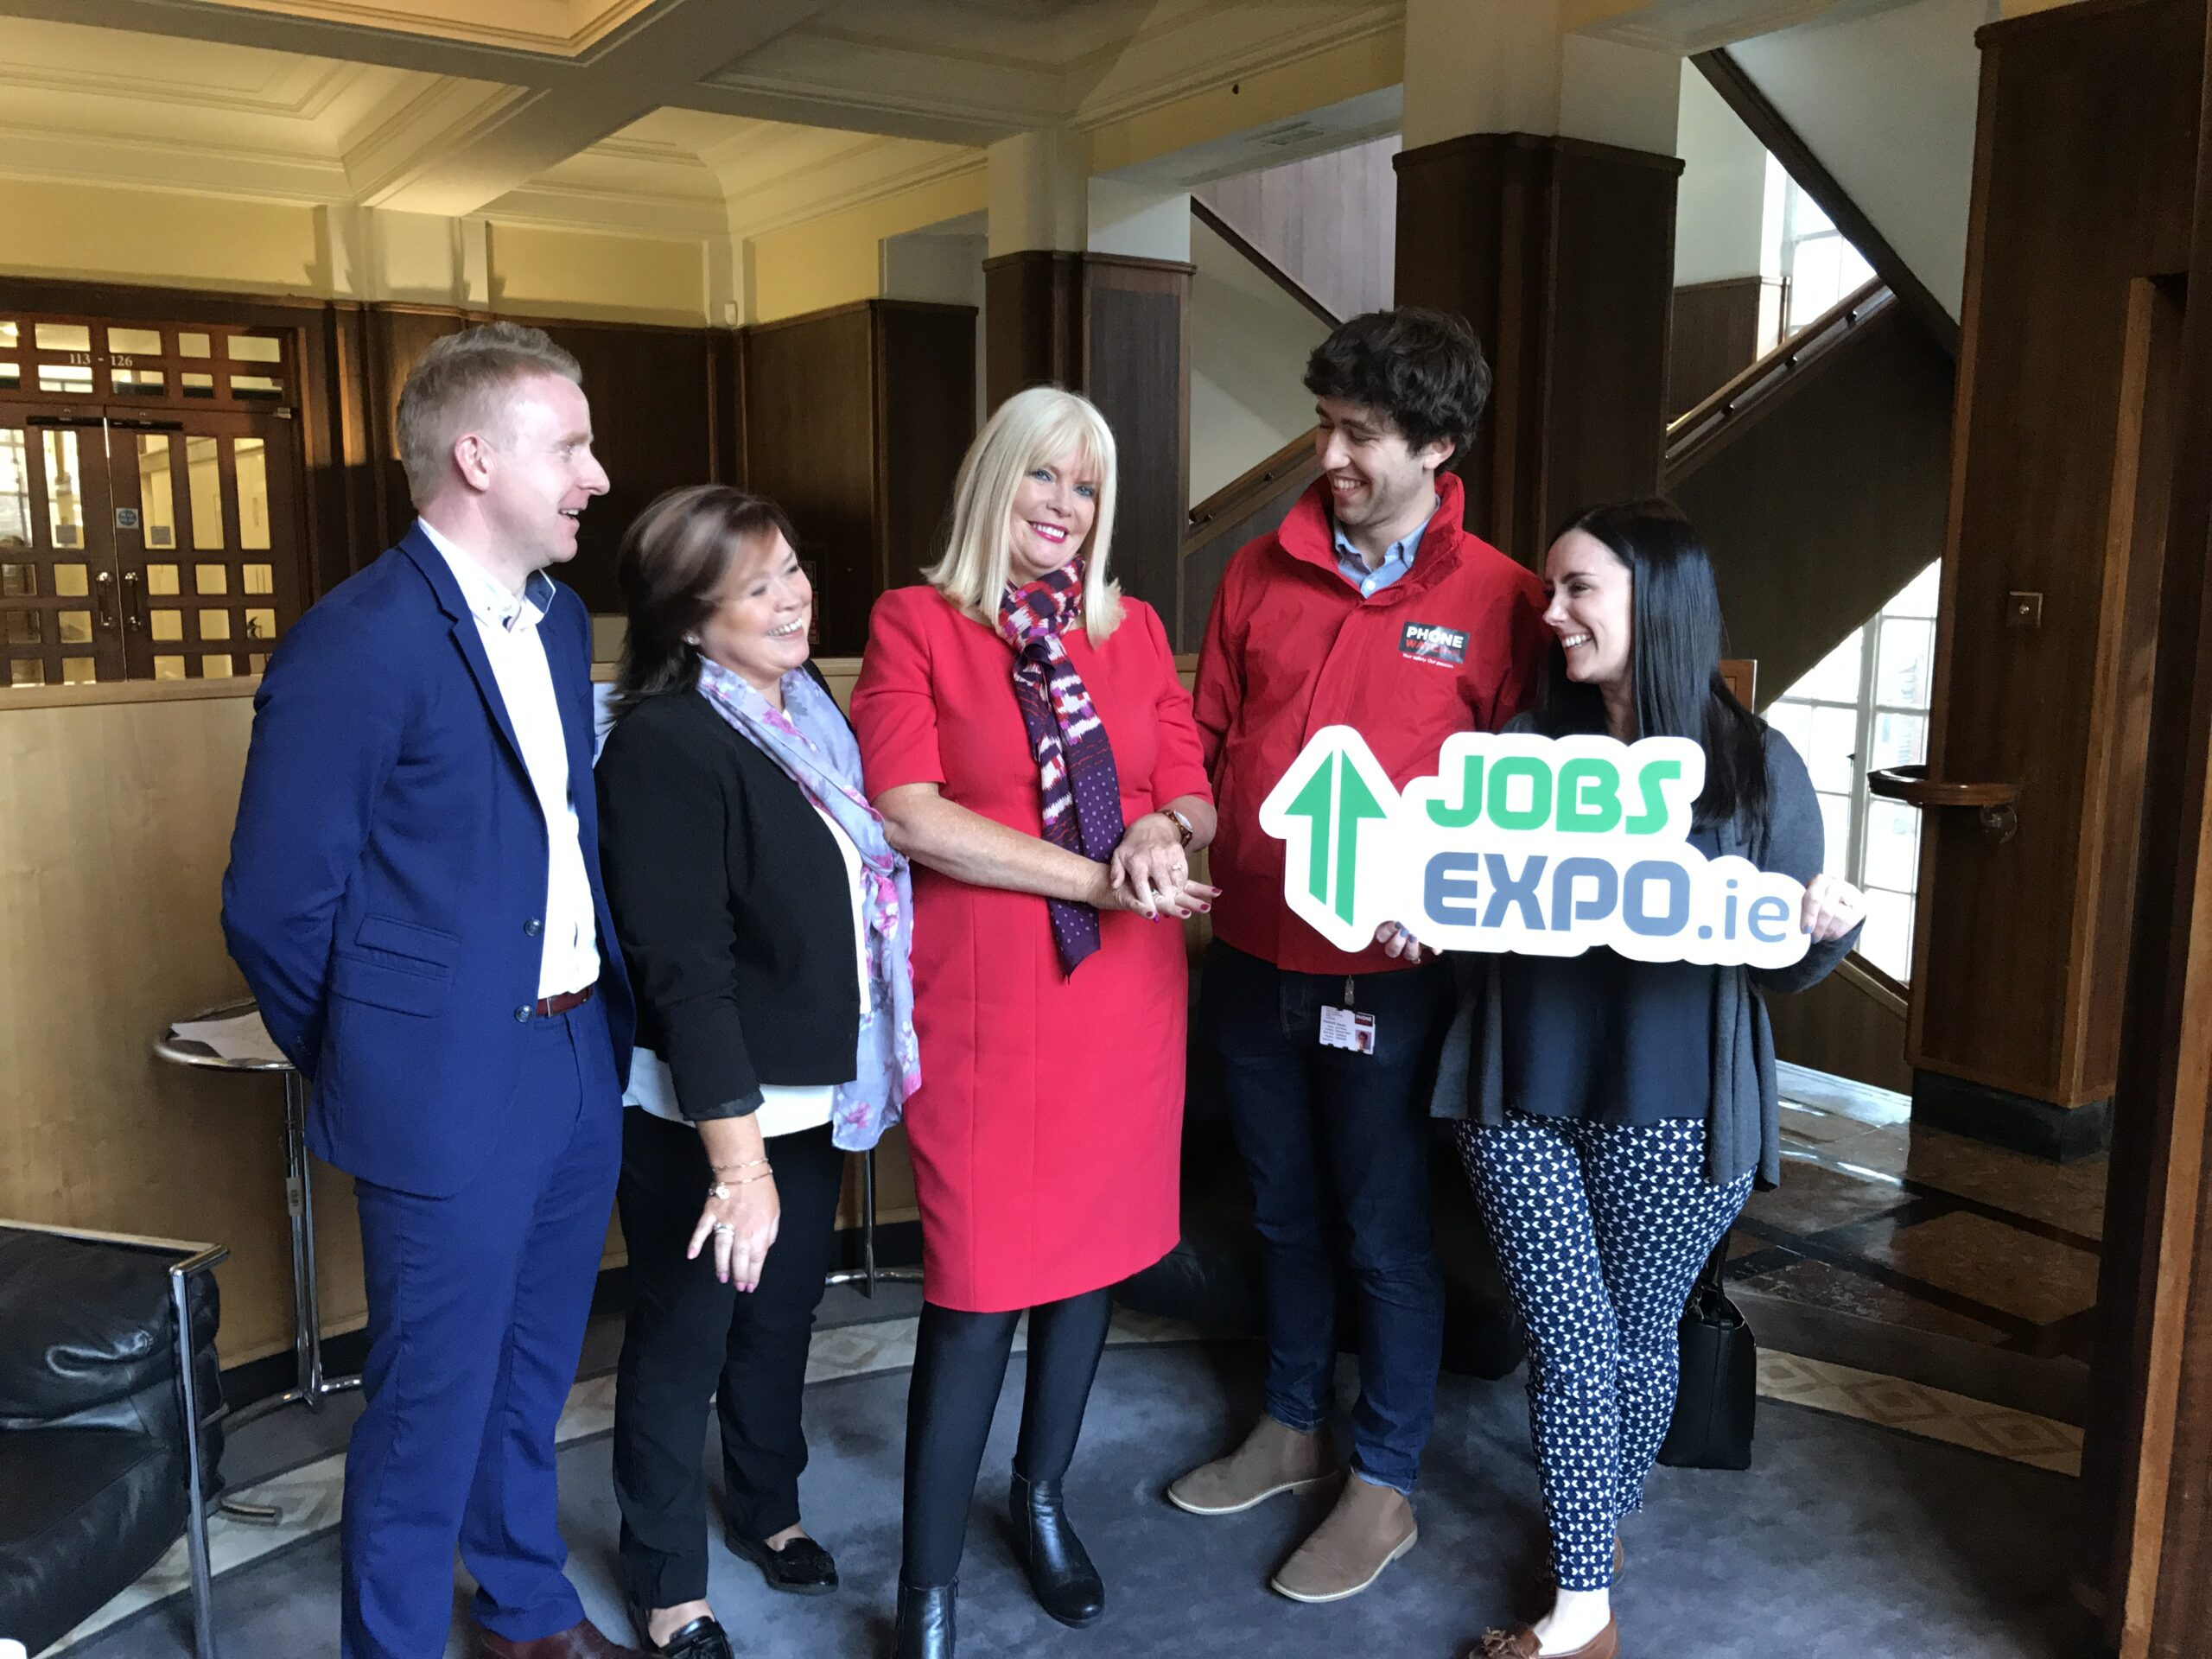 Minister for Jobs, Enterprise and Innovation officially launches Jobs Expo Dublin